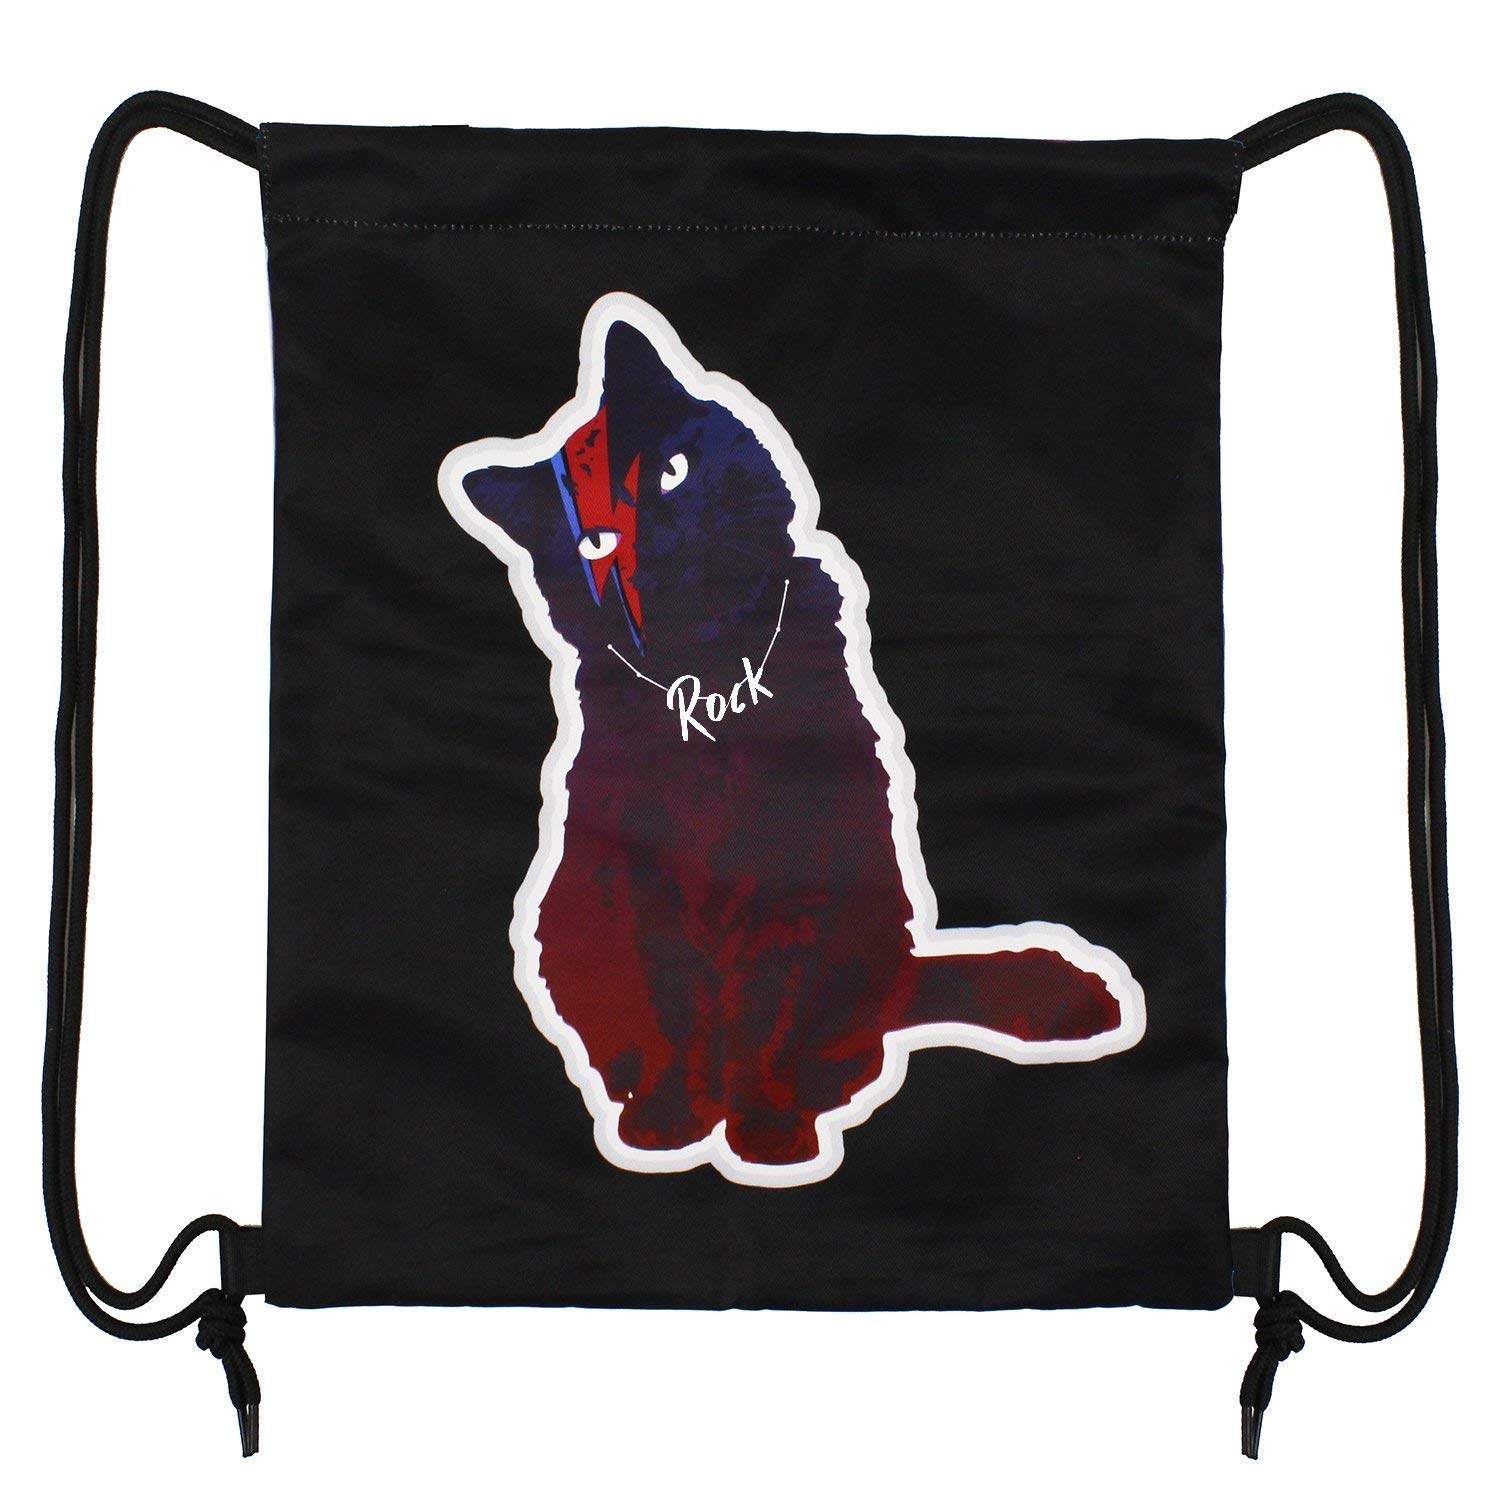 True Holiday Waterproof Fabric Drawstring Bag Backpack Double-sided for Girls and Boys to Gym Sports Trip Swimming School (cat)